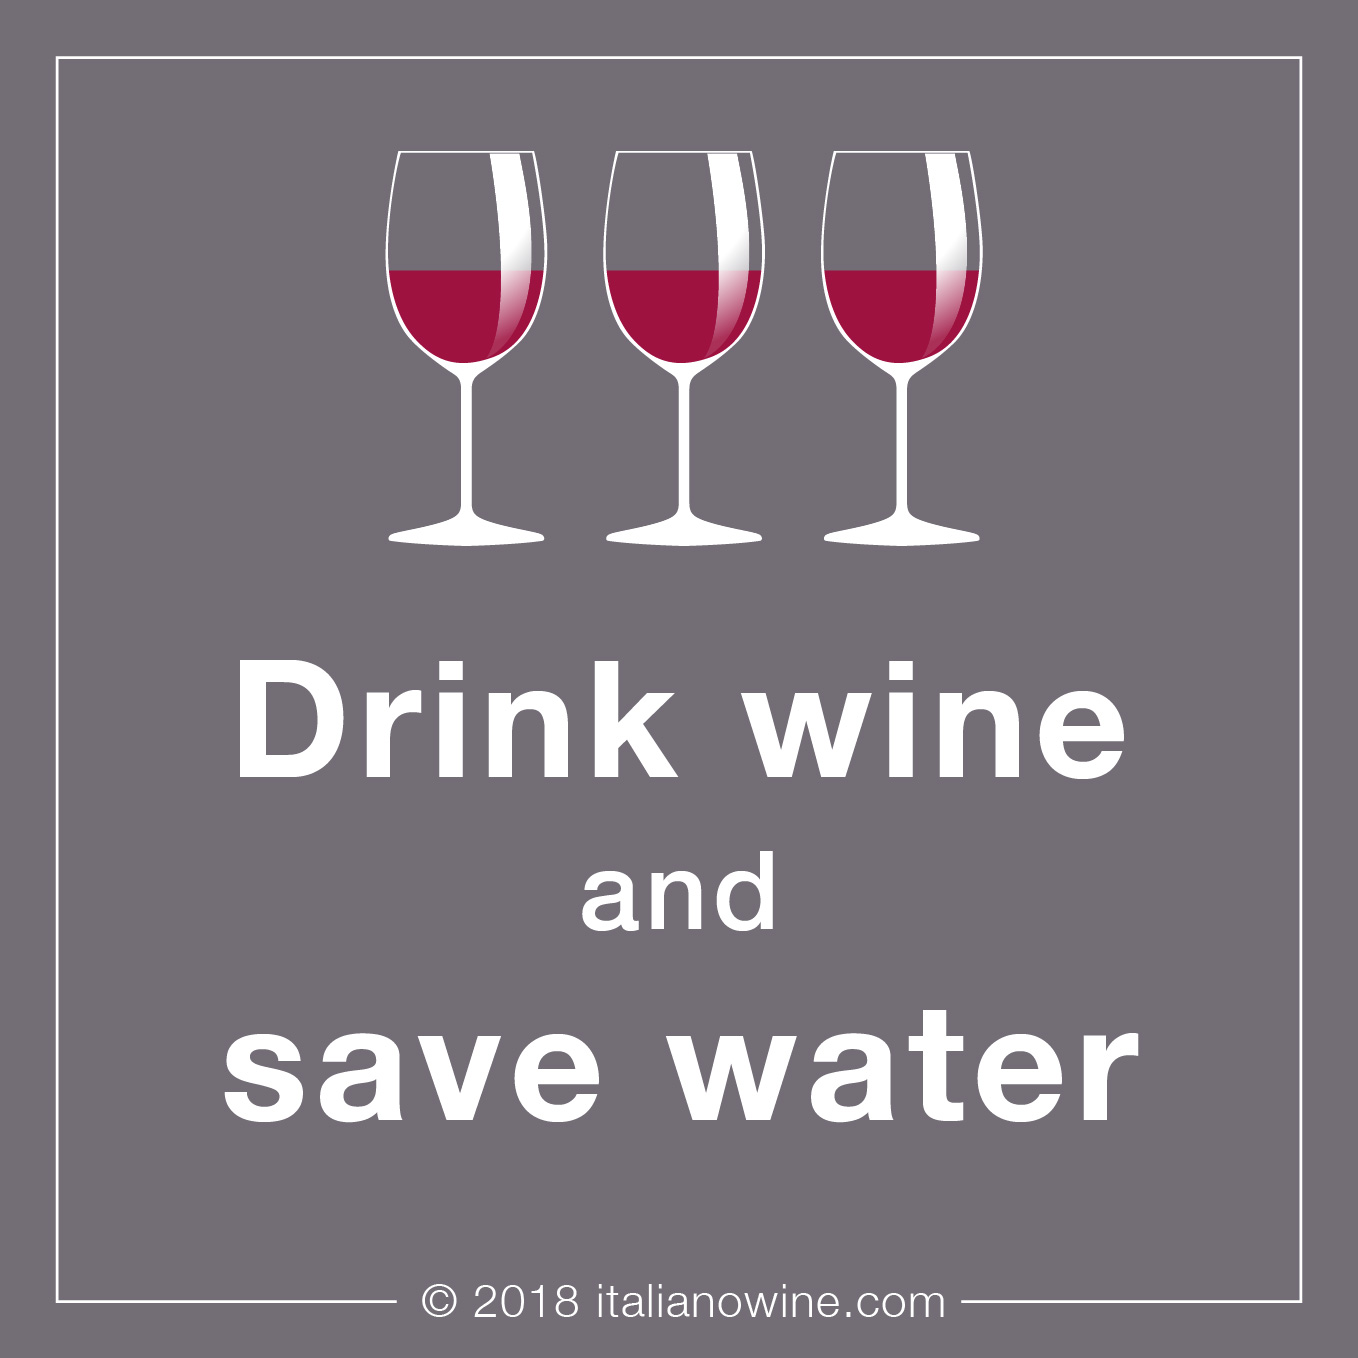 Drink wine and save water IT